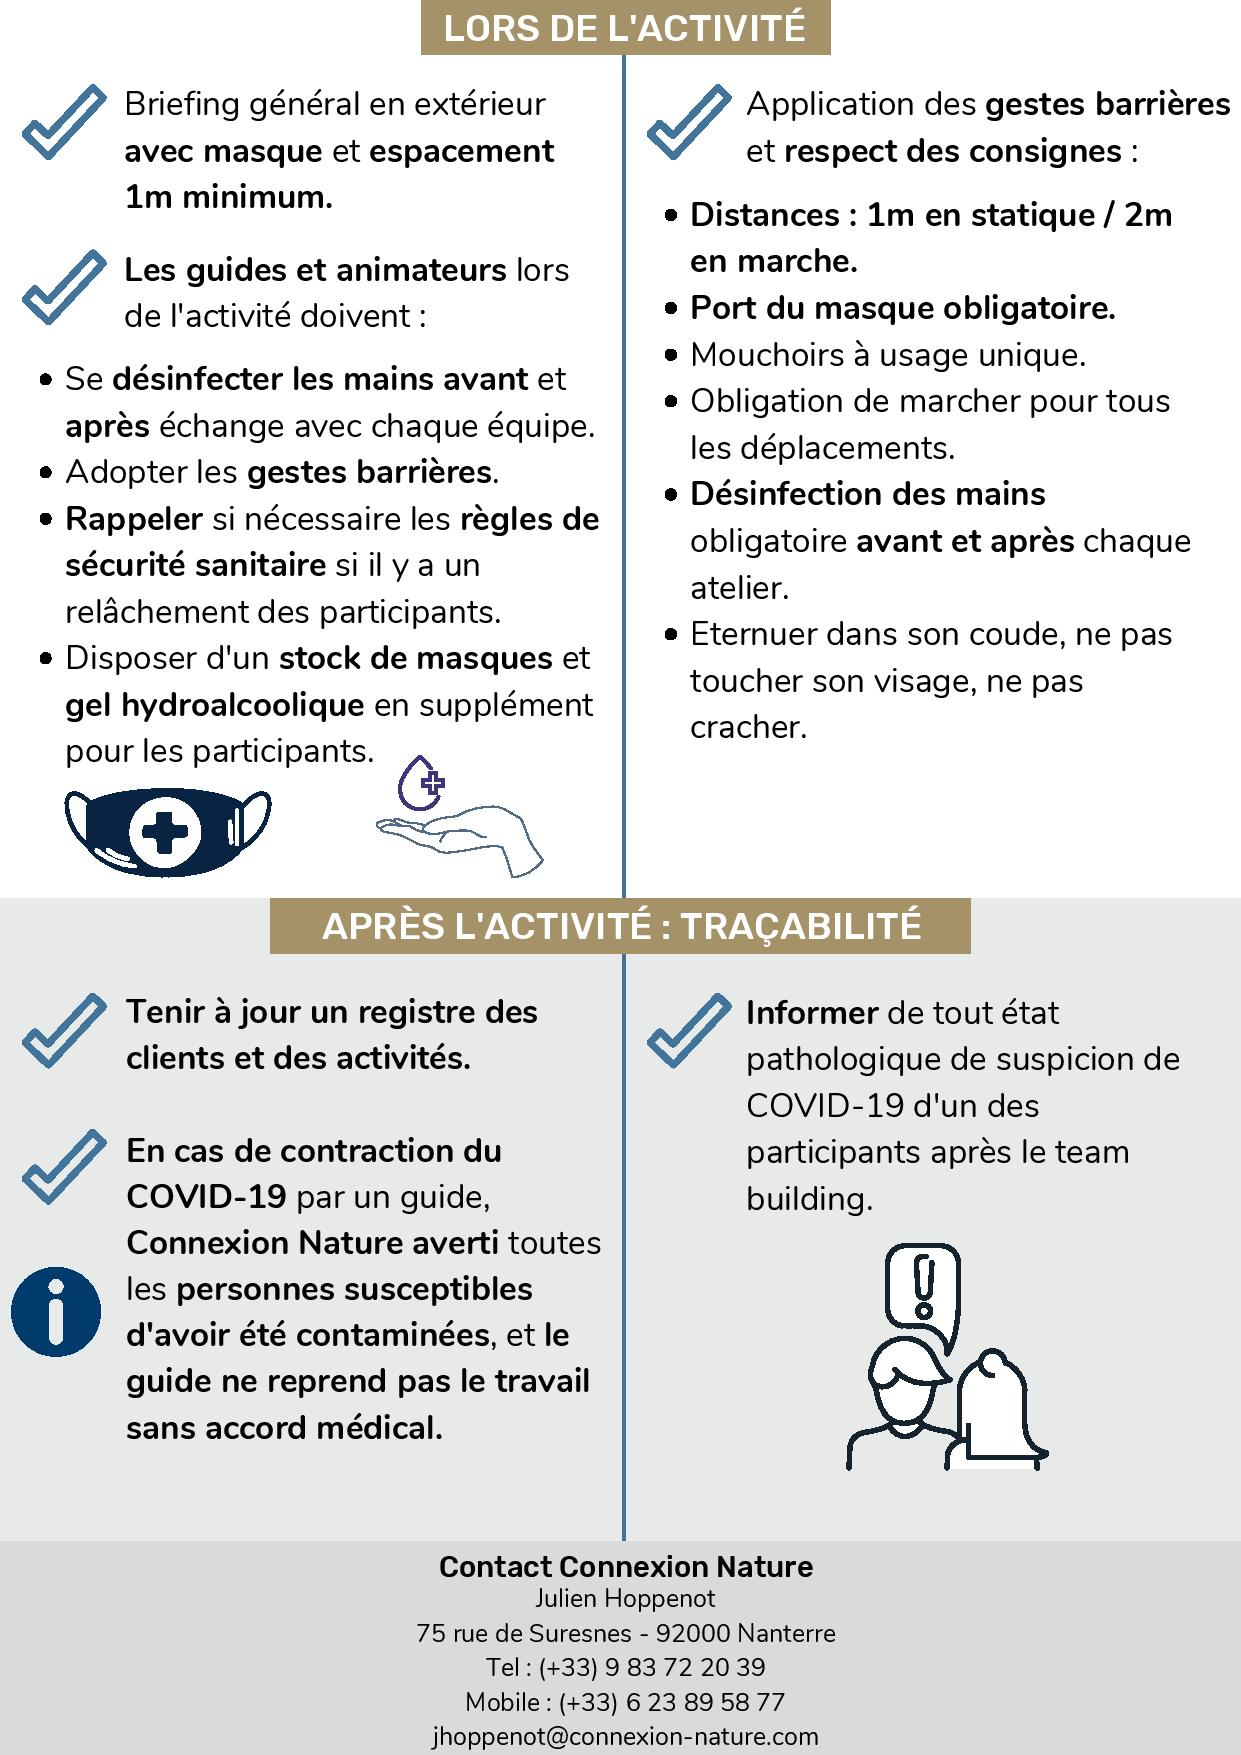 Charte team building COVID-19 page 2